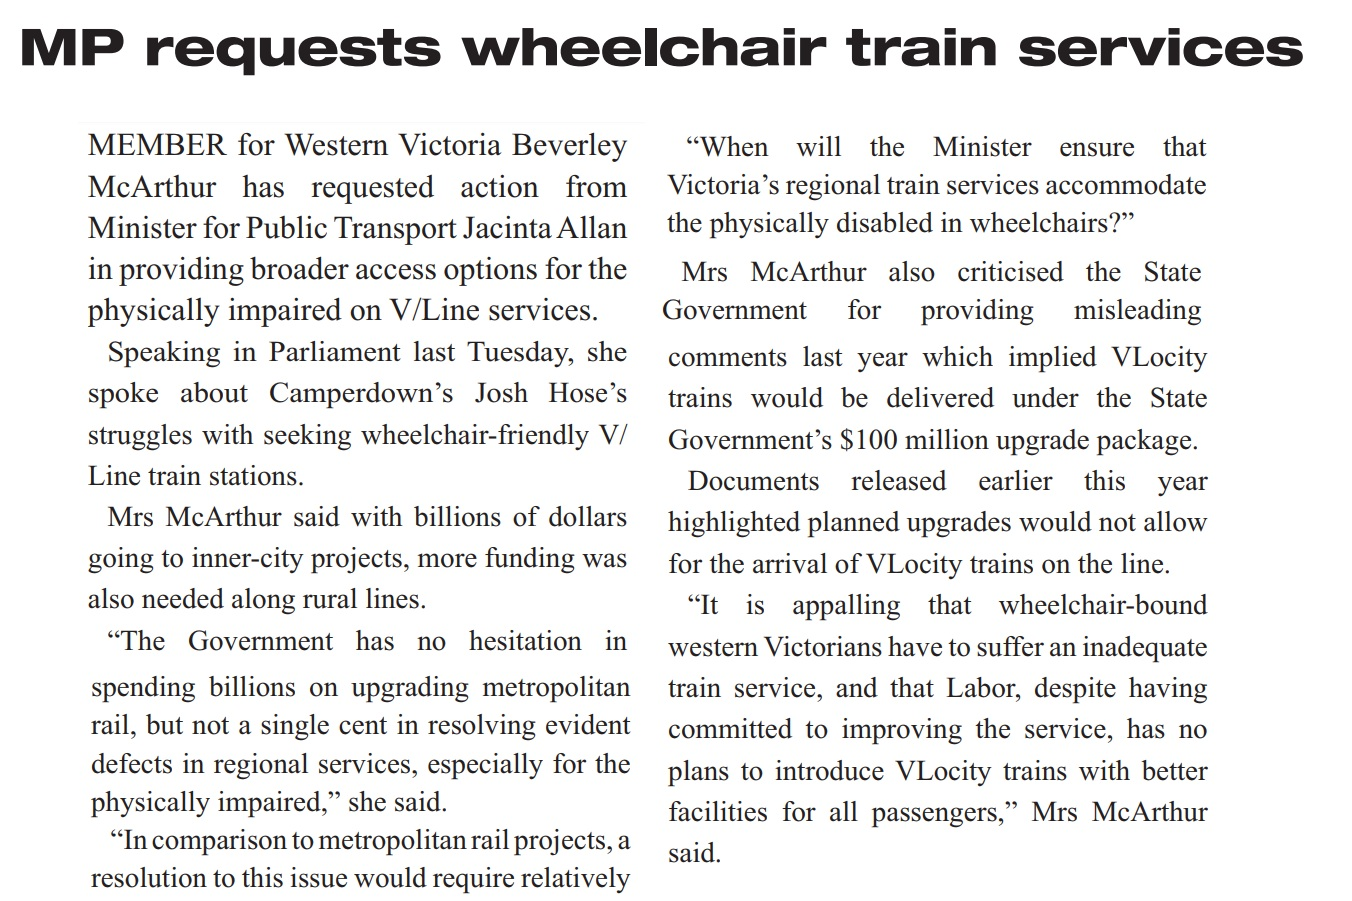 06062019+MP+requests+wheelchair+train+services.jpg